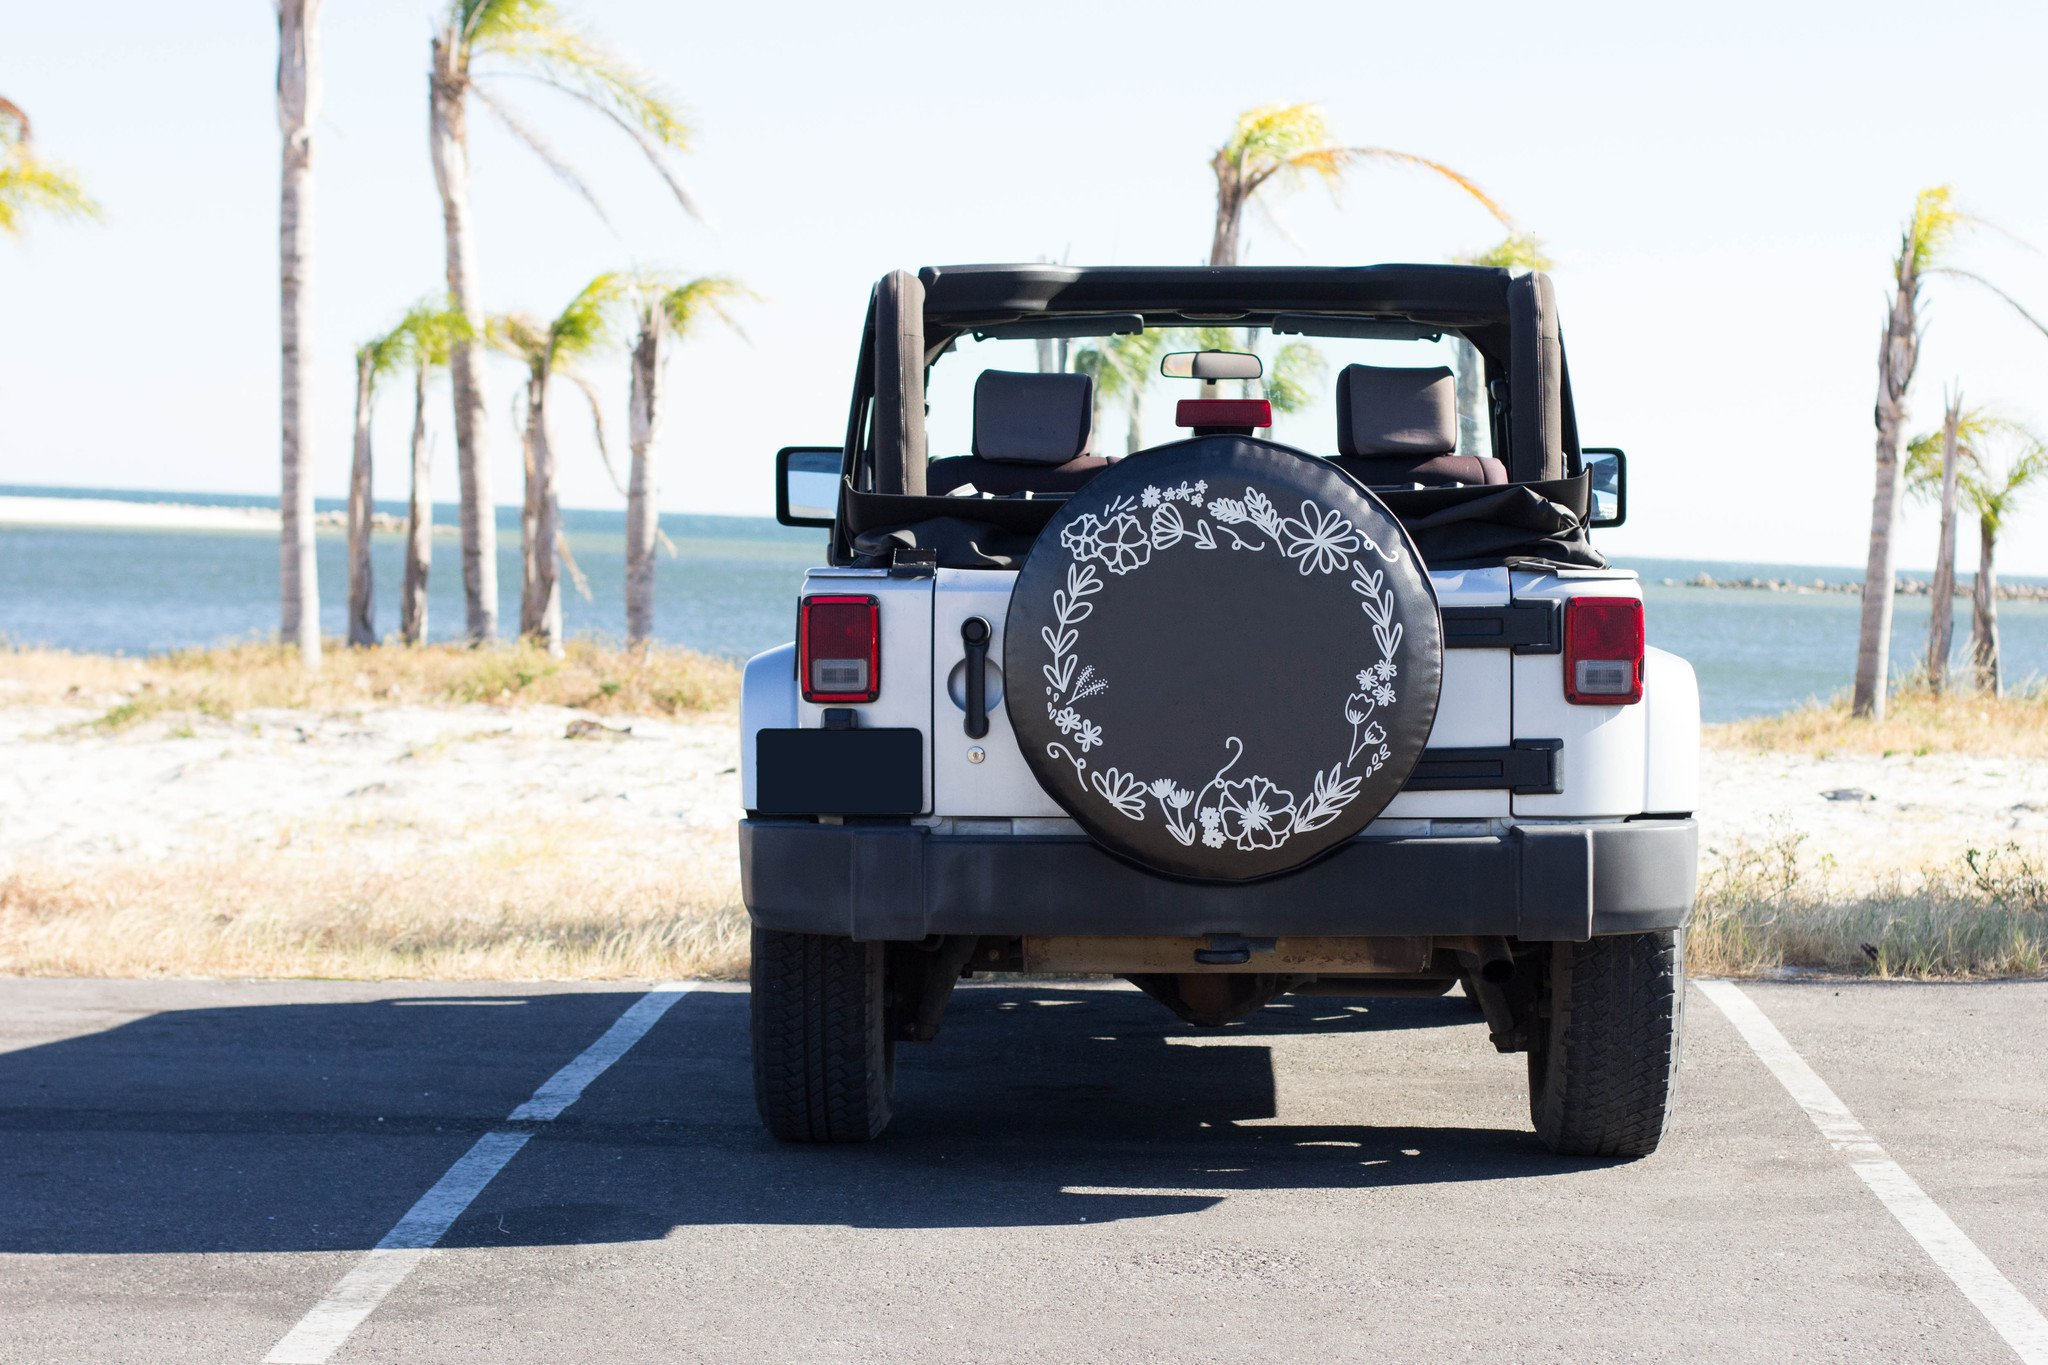 Floral Wreath Tire Cover With Images Jeep Tire Cover Tire